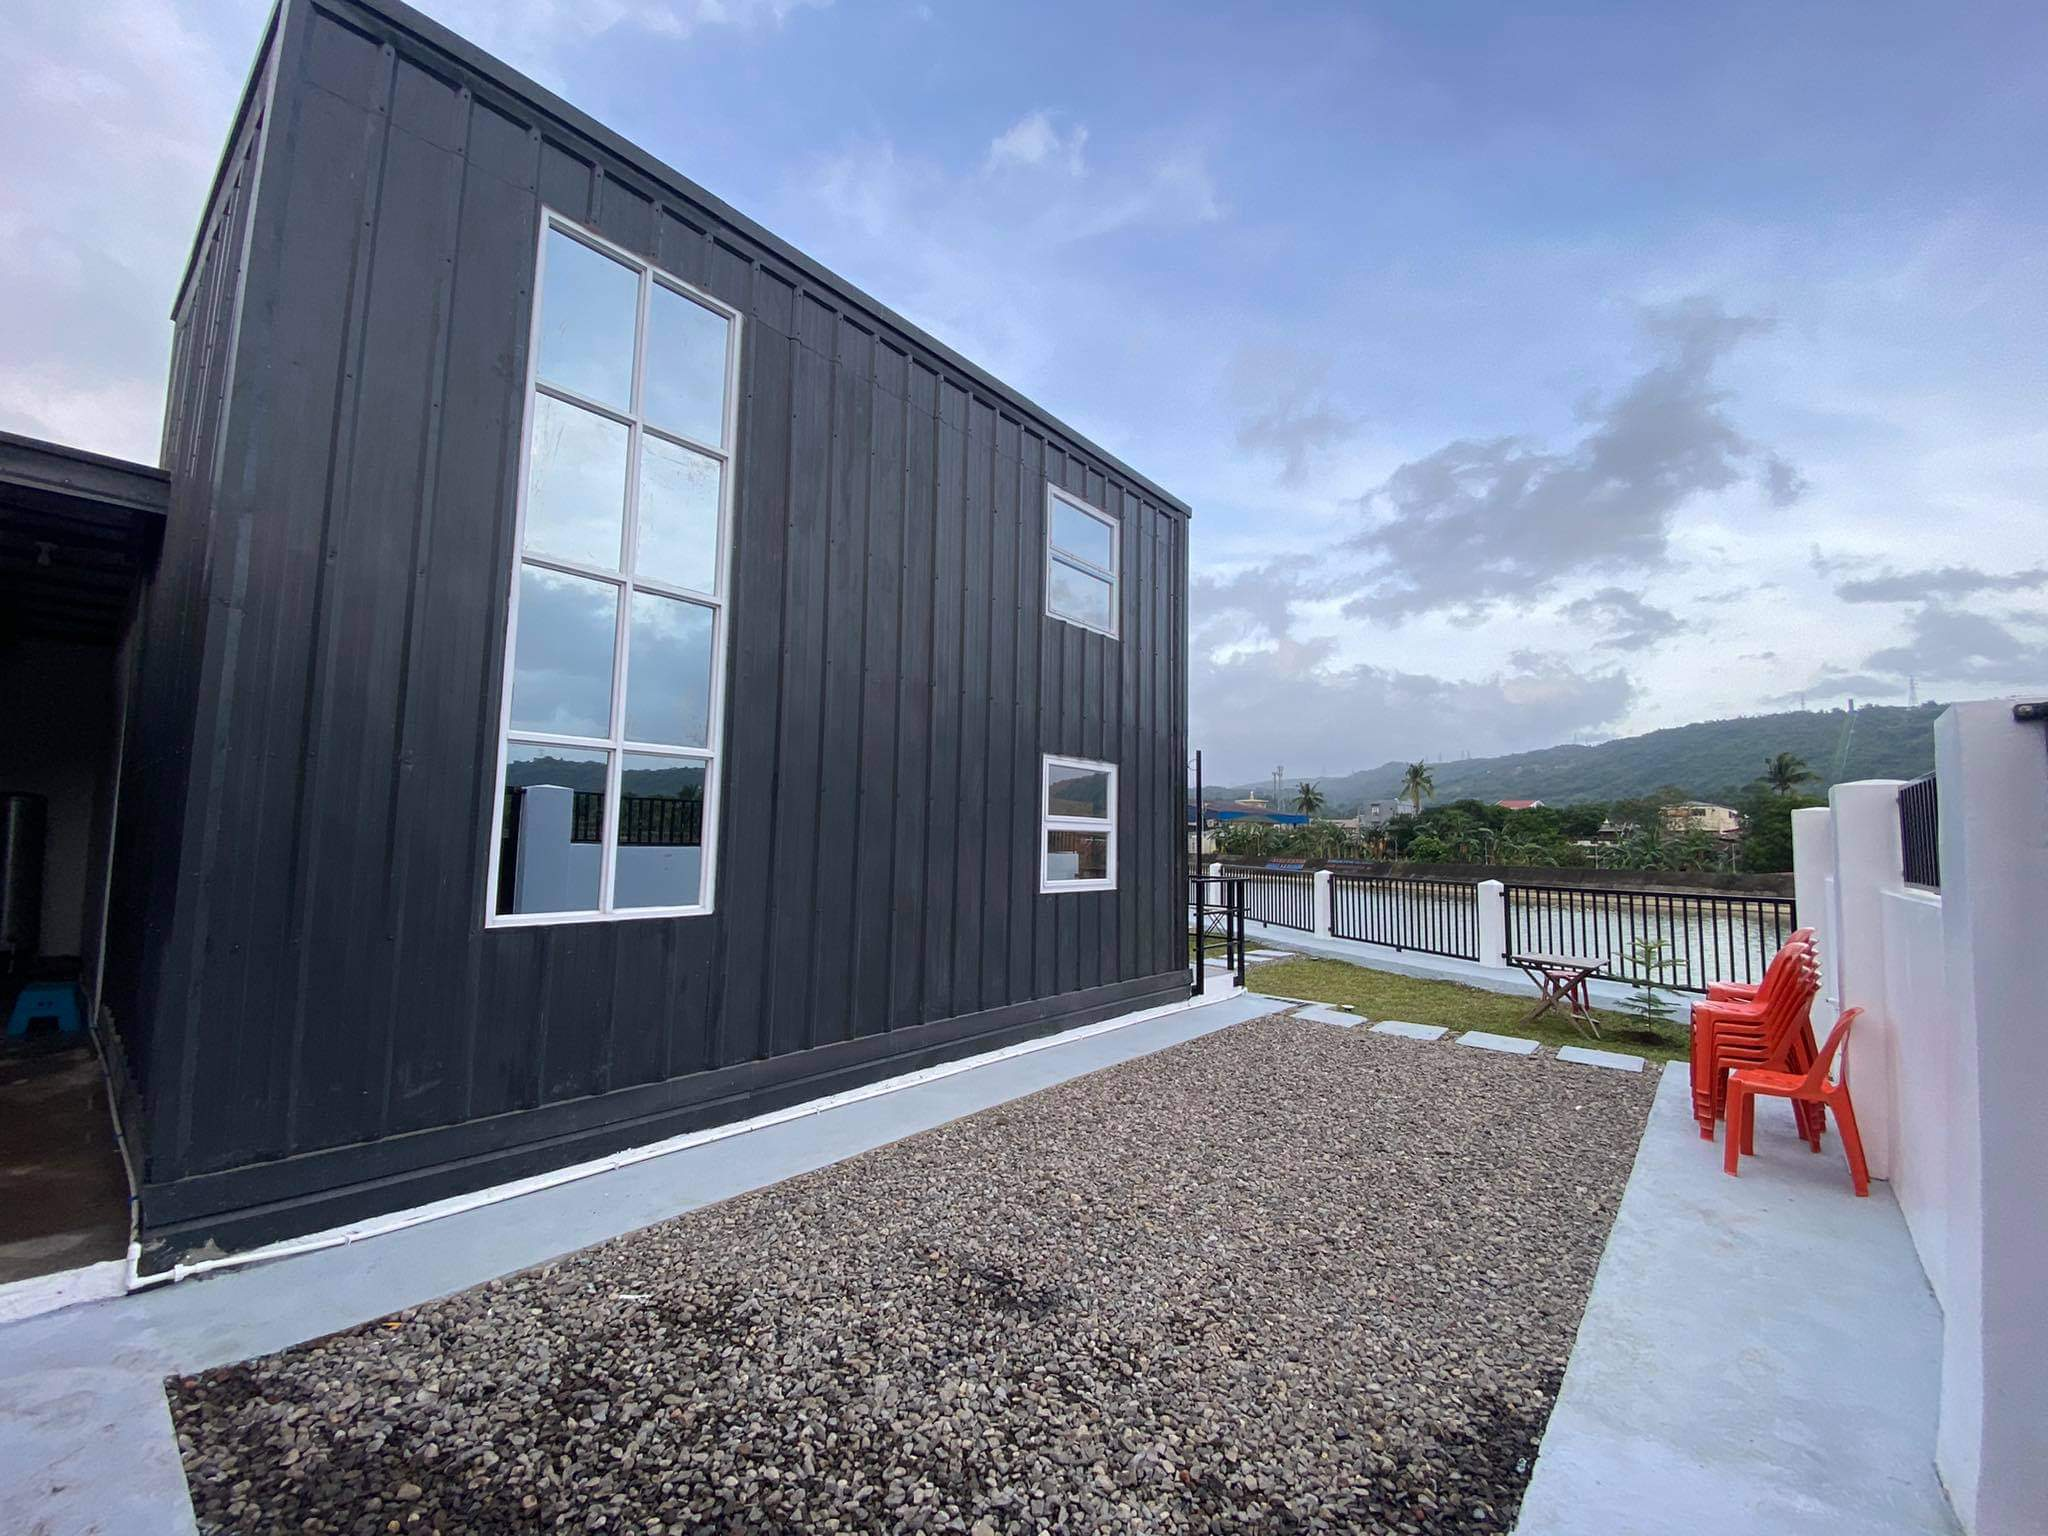 Minimalist exterior of a shipping container home